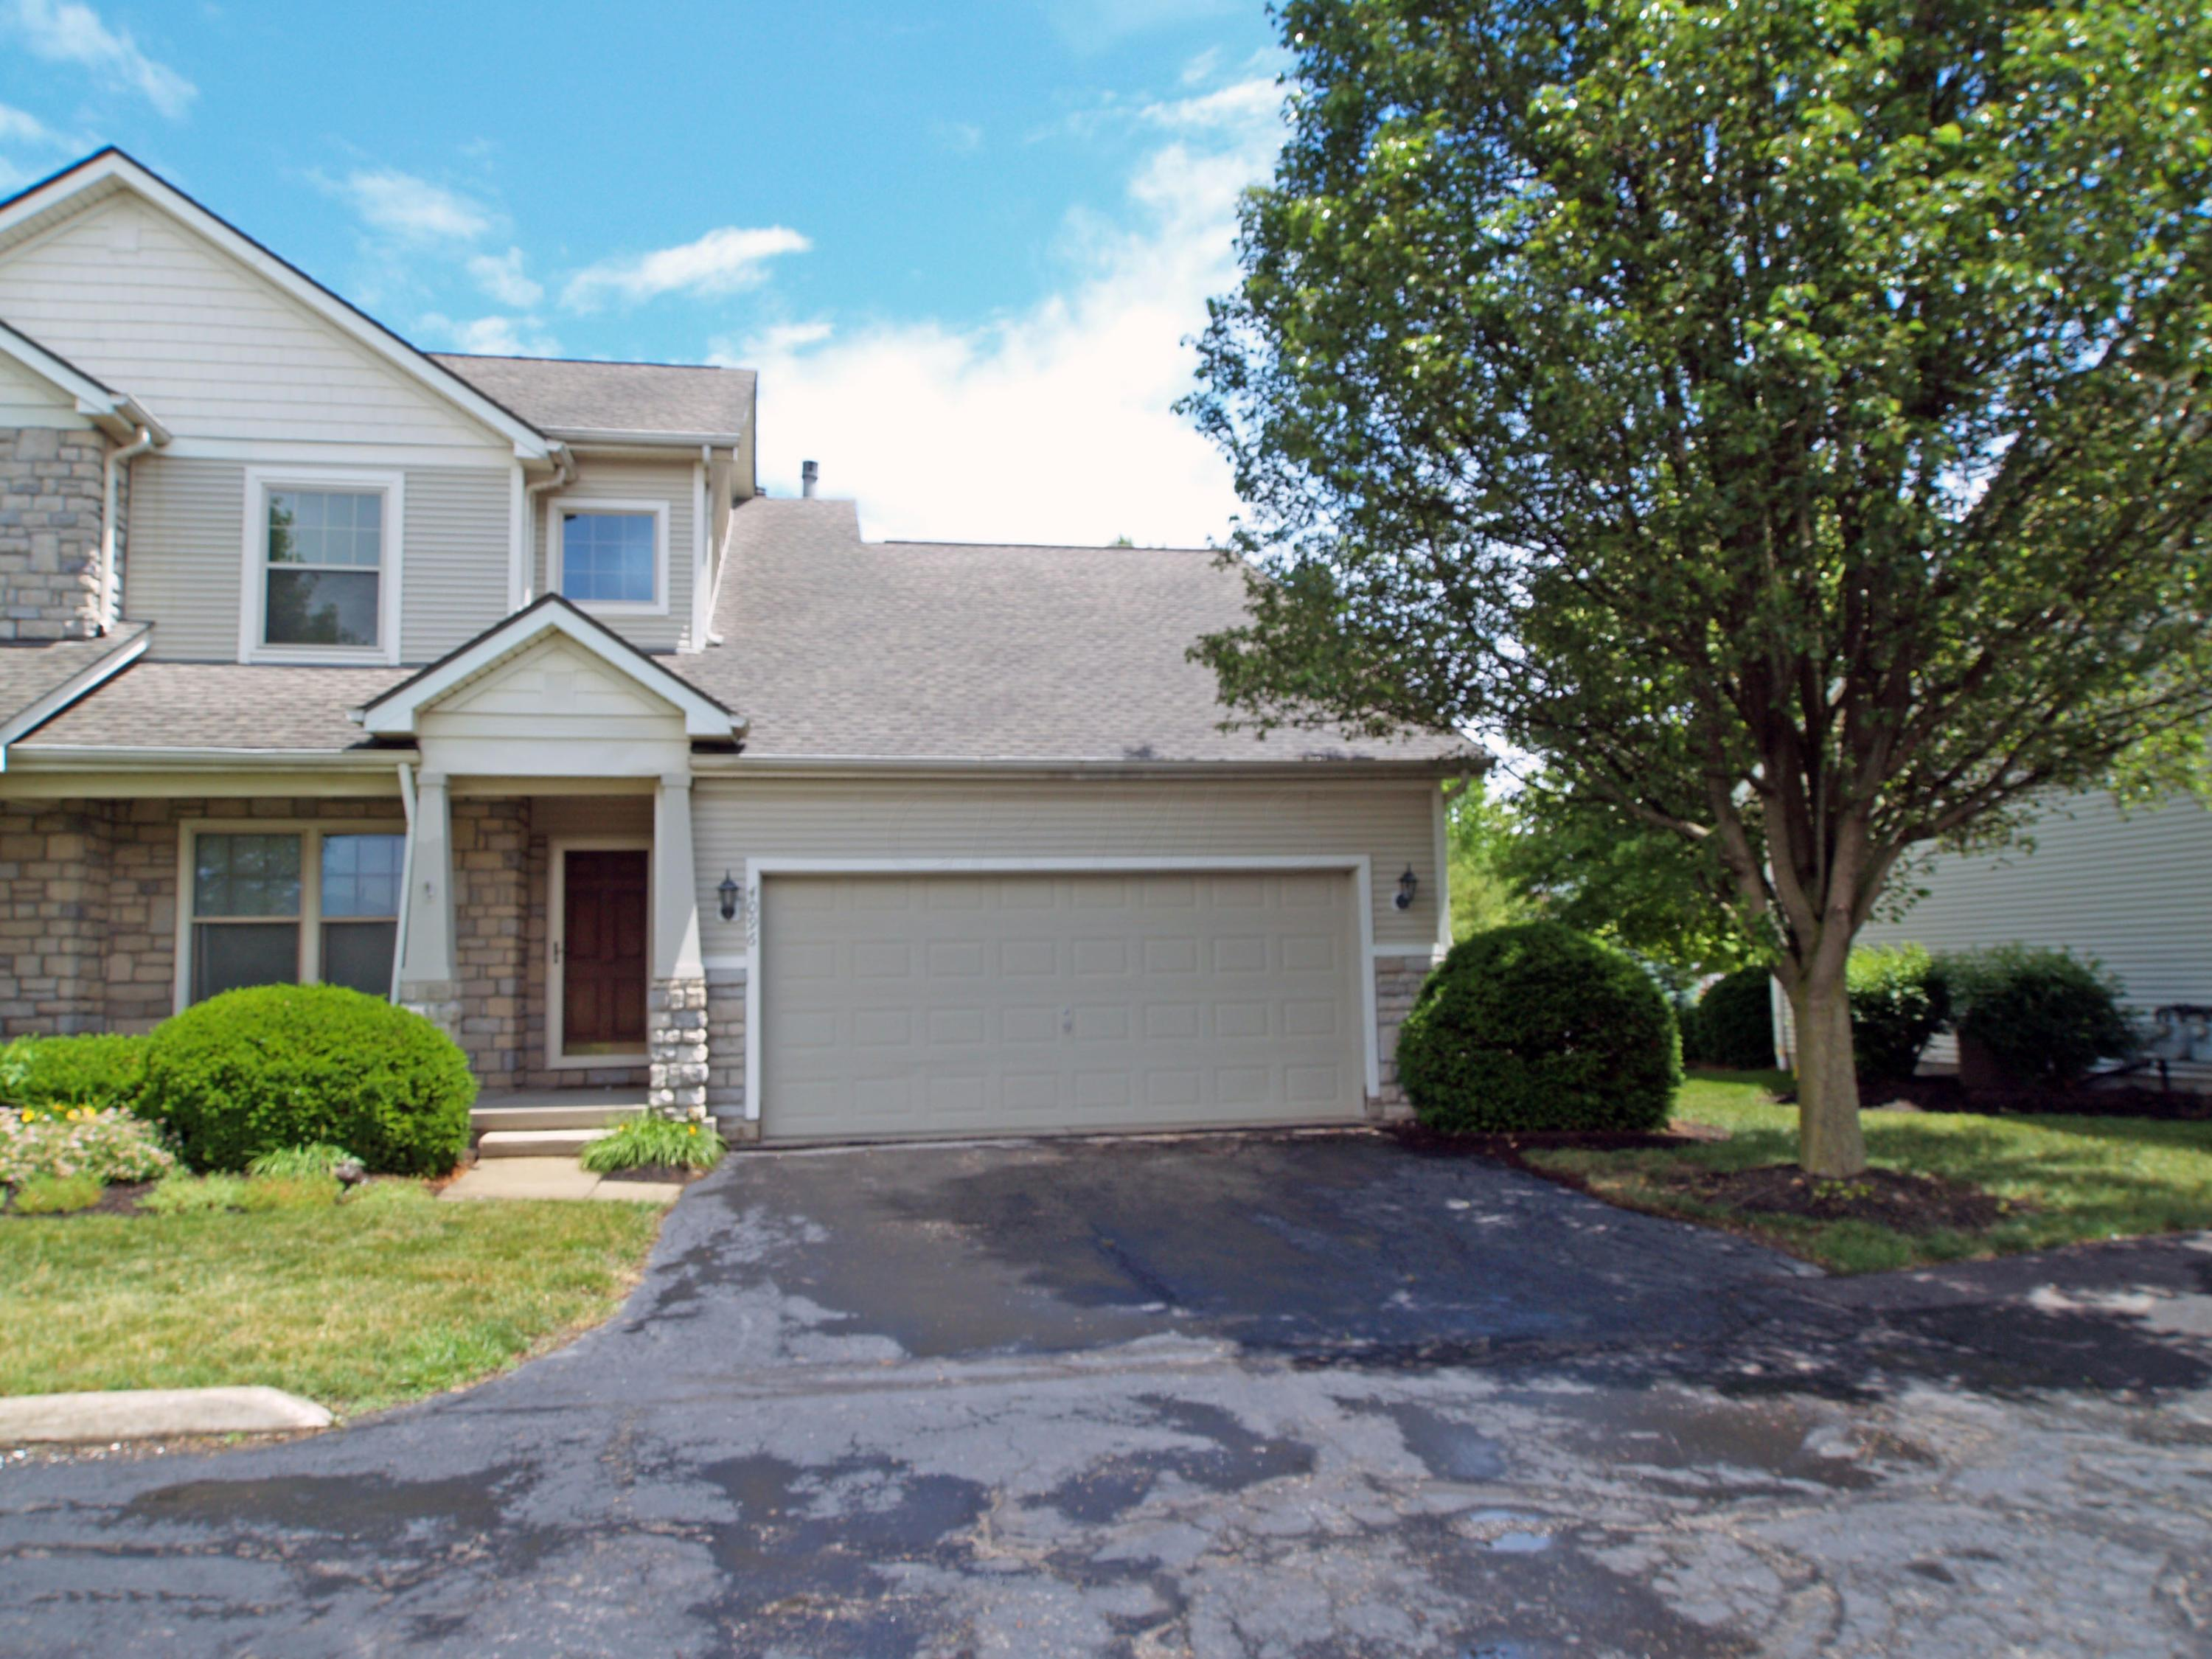 4096 Coventry Manor Way, Hilliard, Ohio 43026, 3 Bedrooms Bedrooms, ,4 BathroomsBathrooms,Residential,For Sale,Coventry Manor,220020031